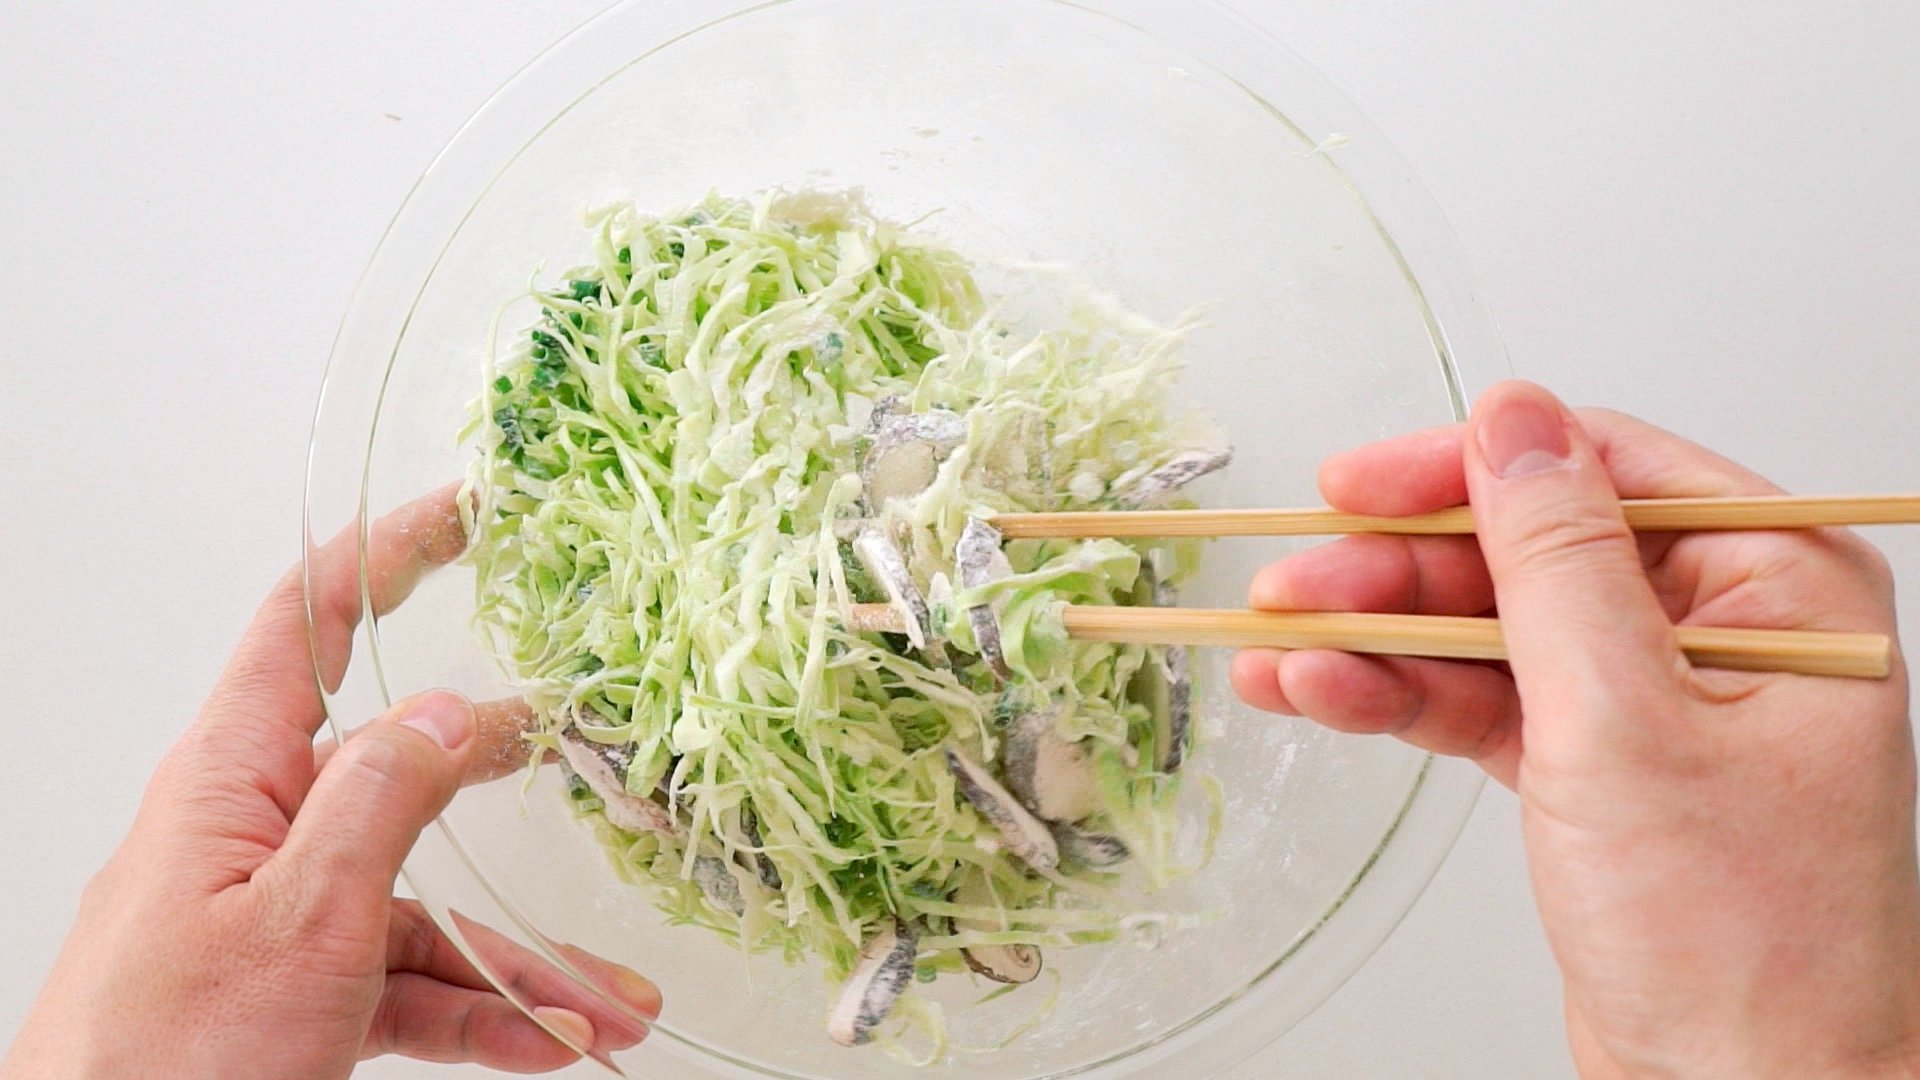 Mixing shredded cabbage, mushrooms and scallions together with flour.